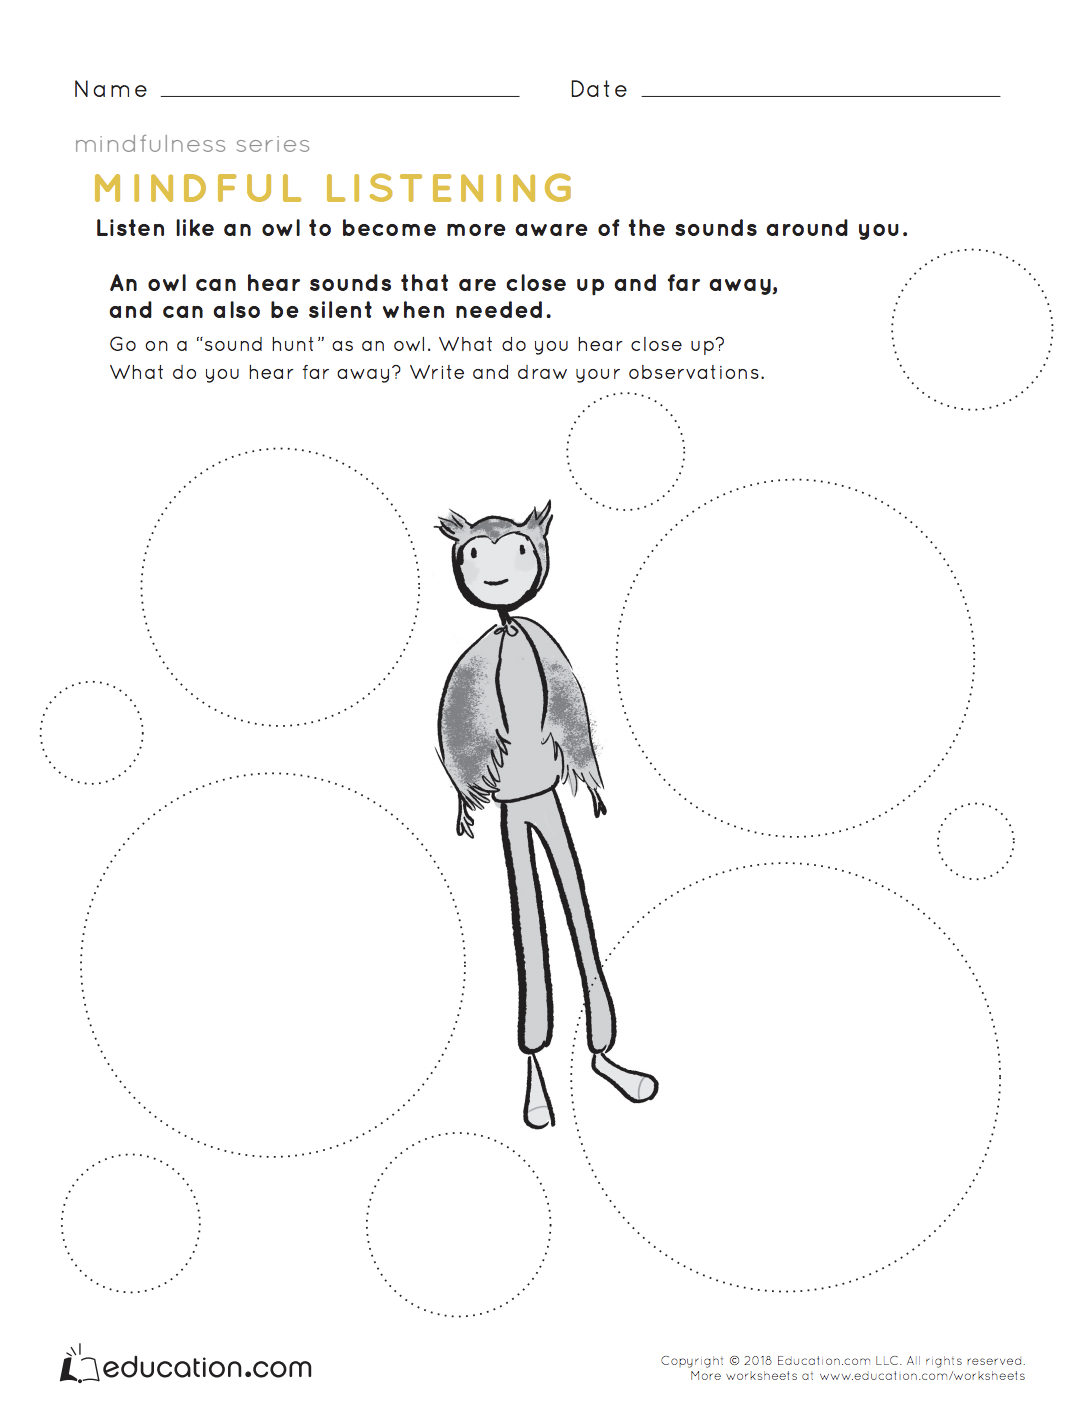 Mindfulness Mindful Listening